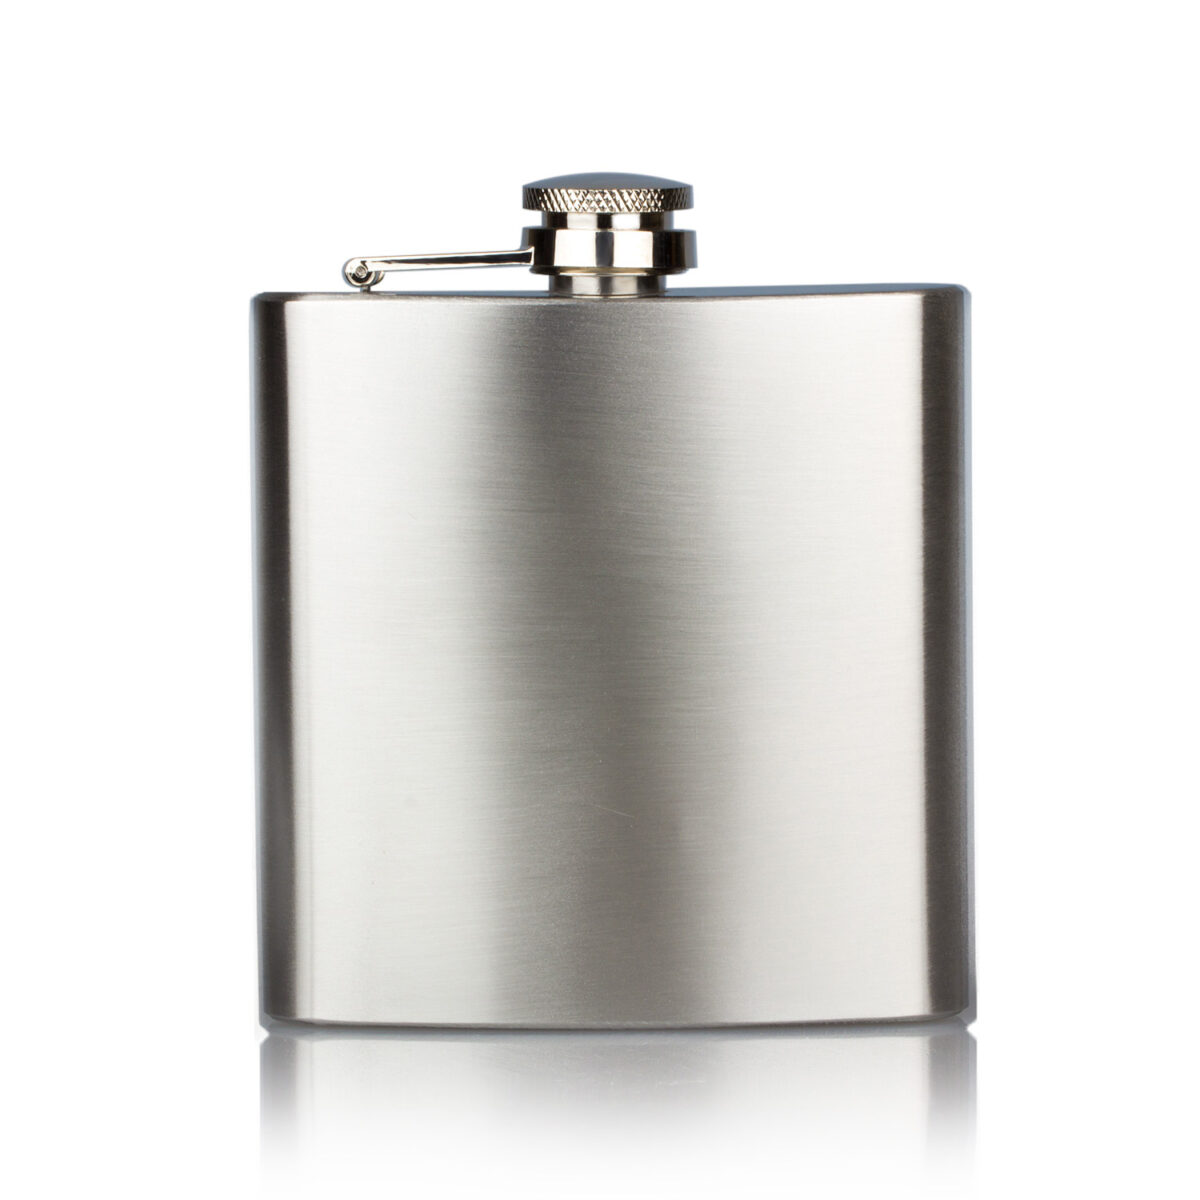 Classic grey stainless steel personalised hip flask